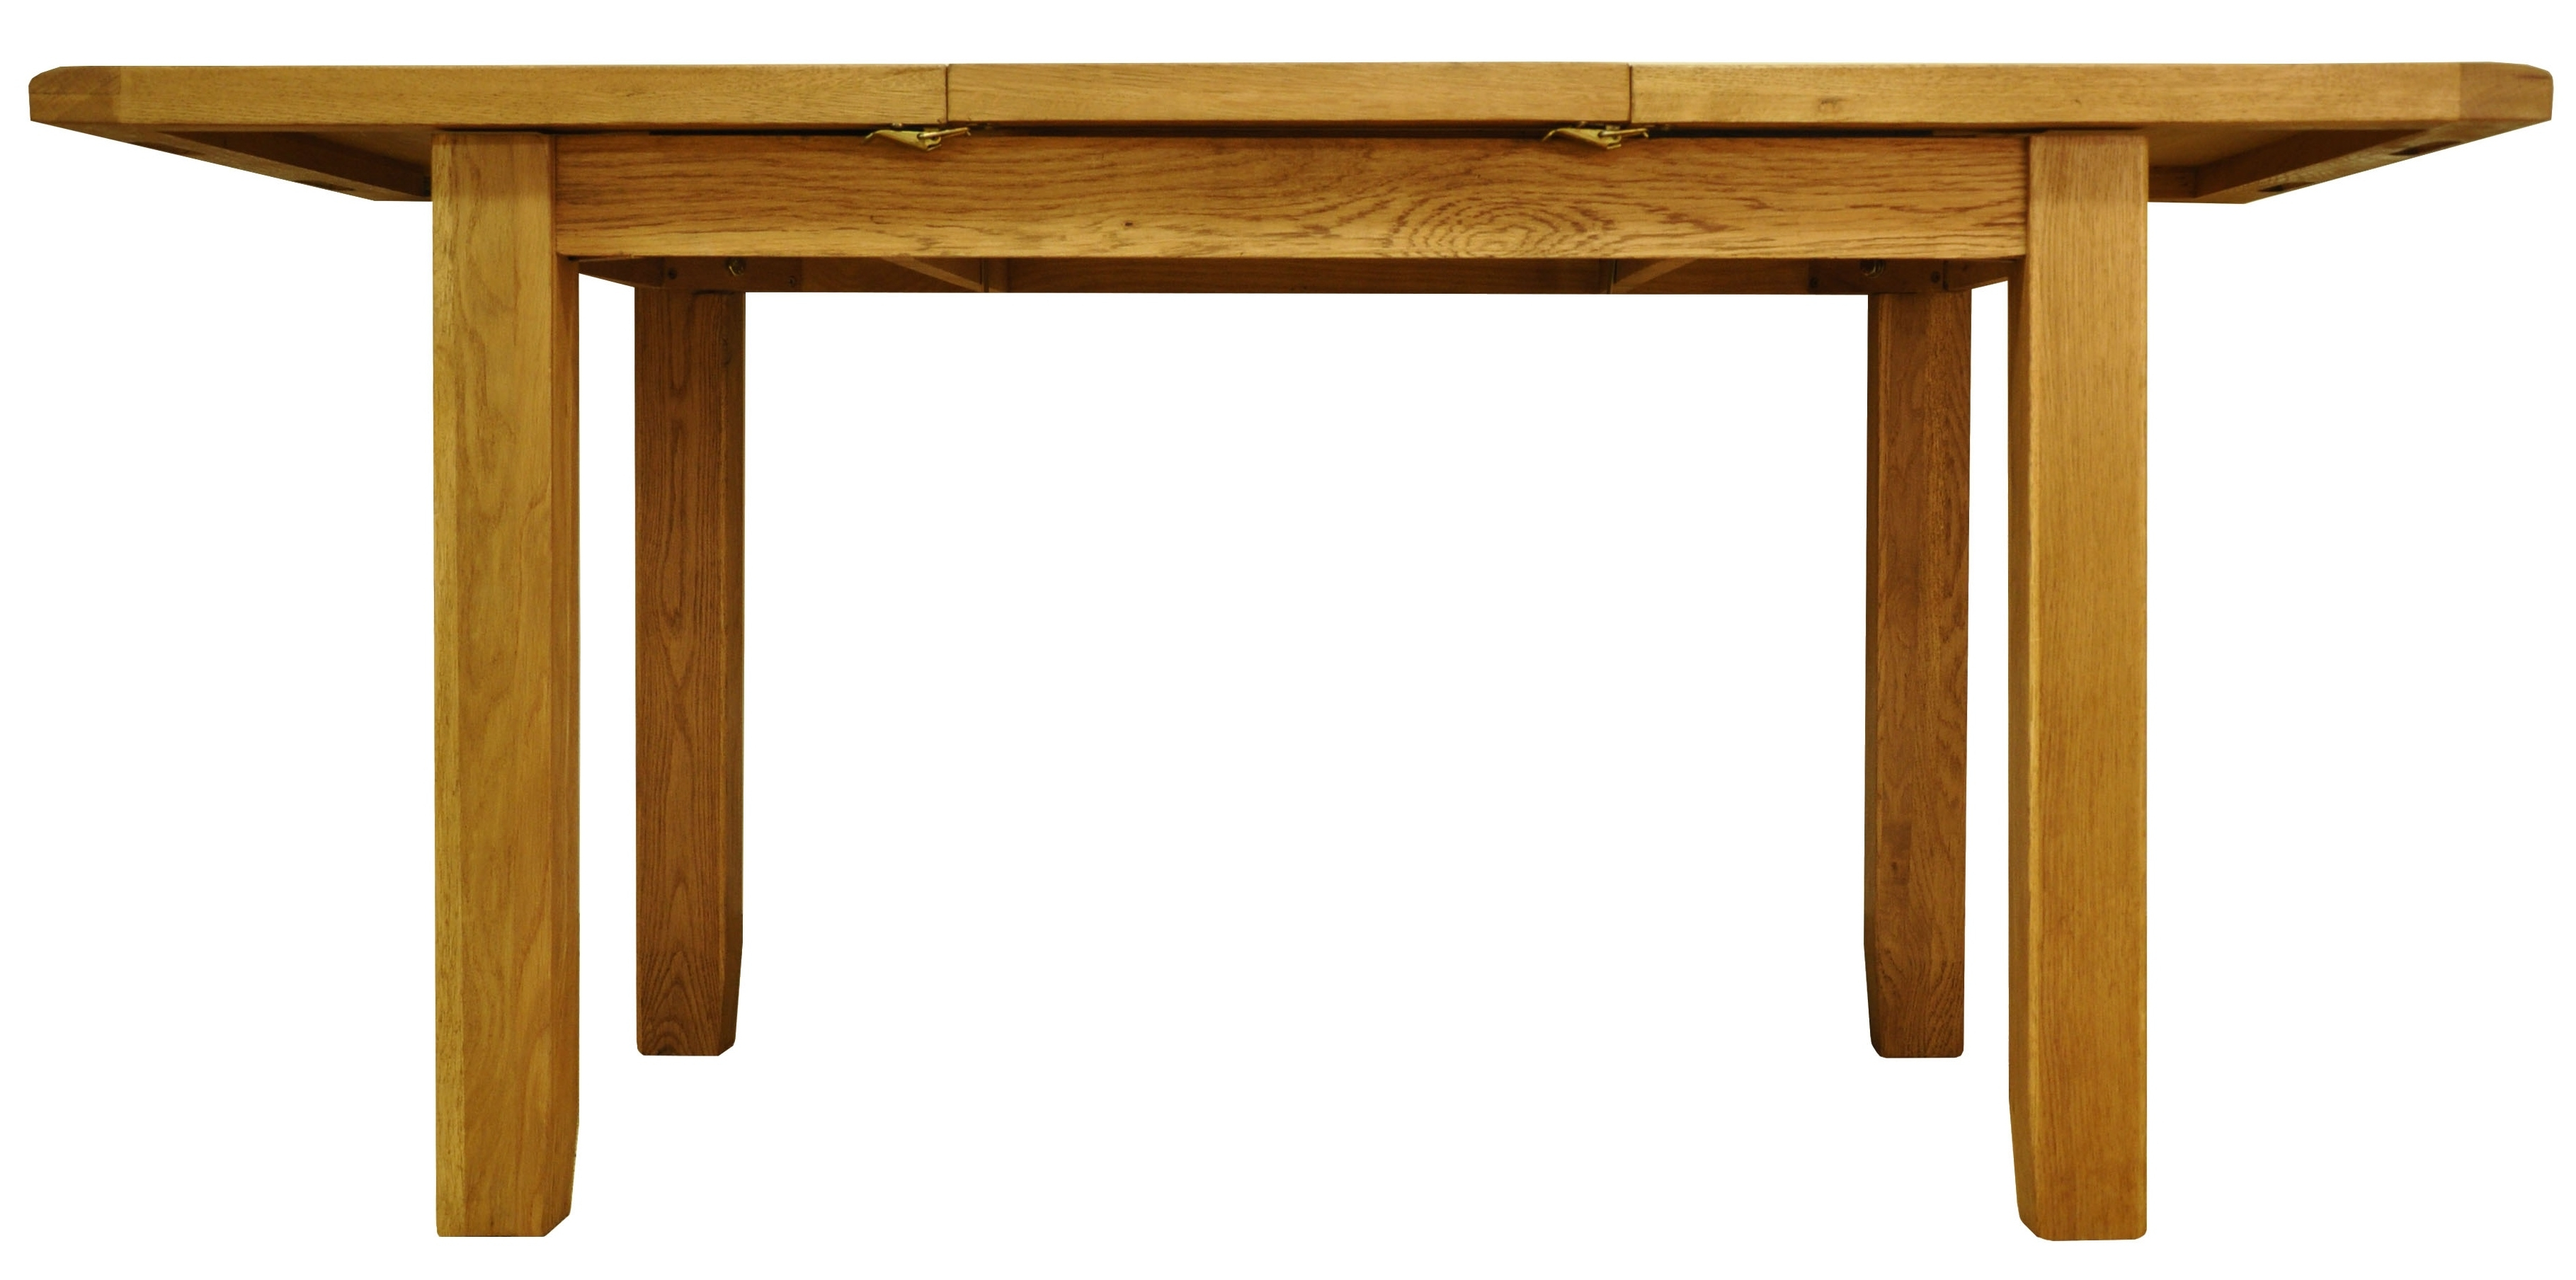 Popular Dining Tables : Stanton Small Butterfly Rustic Oak Extending Dining Regarding Flip Top Oak Dining Tables (View 19 of 25)